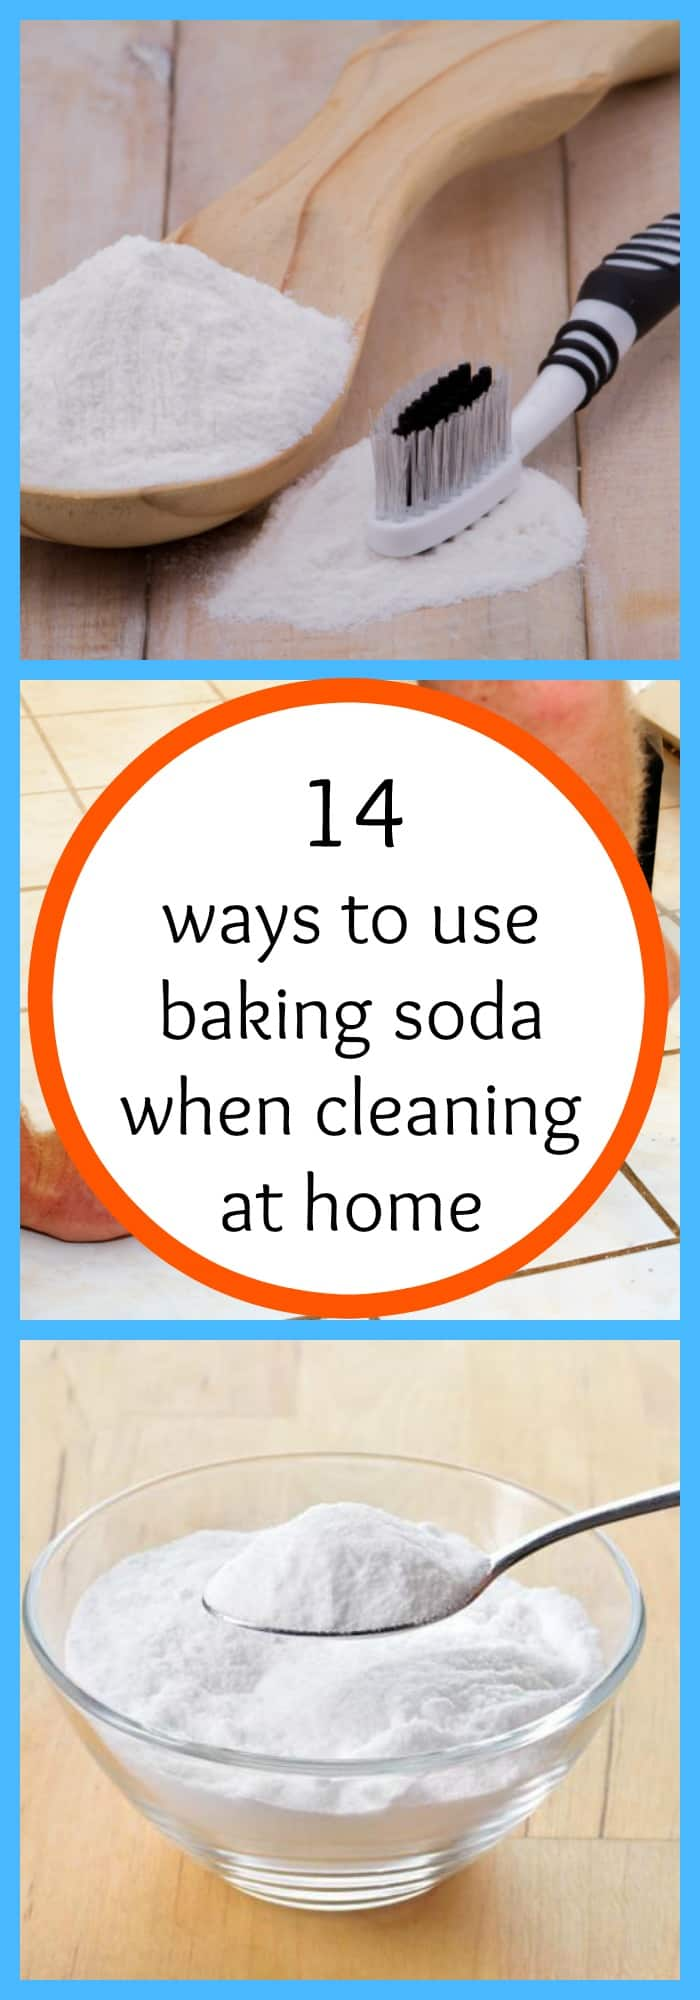 Cleaning-14 ways to use baking soda when cleaning at home-The Organized Mom